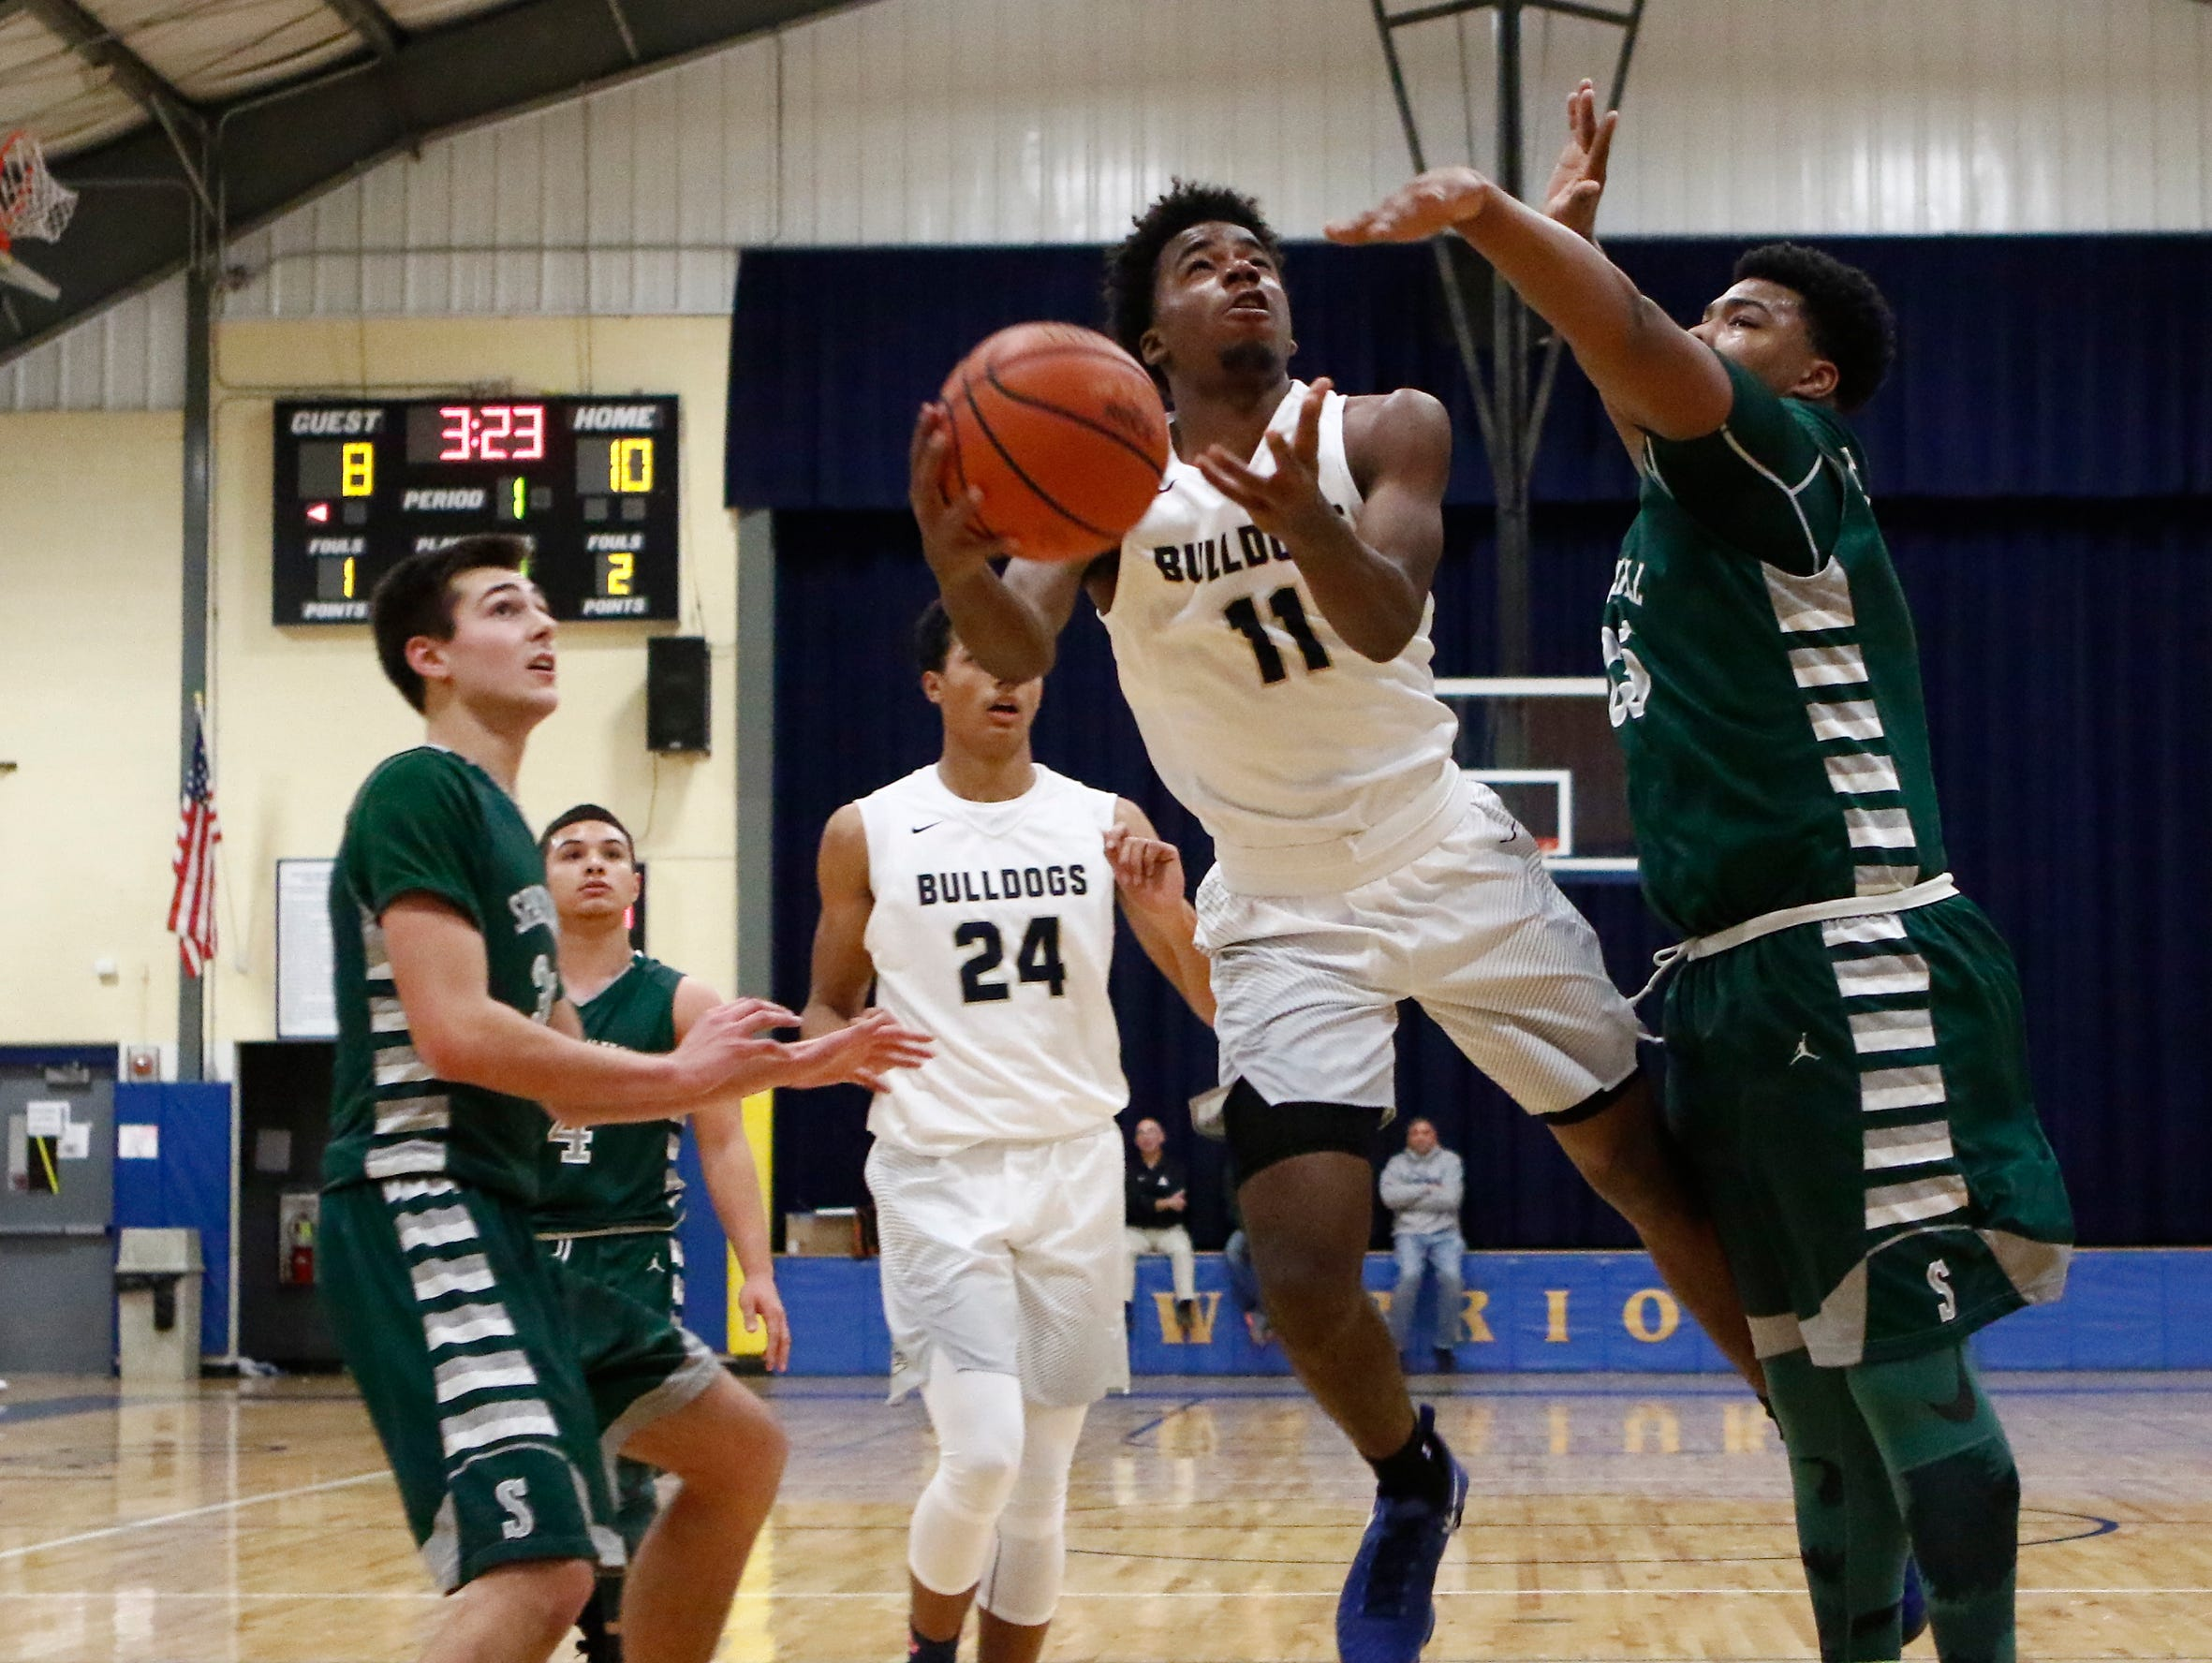 Beacon's Zamere McKenzie (11) drives on Spackenkill's Kyiev Bennermon (25) in the championship game of the Duane Davis memorial basketball tournament at Our Lady of Lourdes High School in Poughkeepsie on Saturday, December 31, 2016.